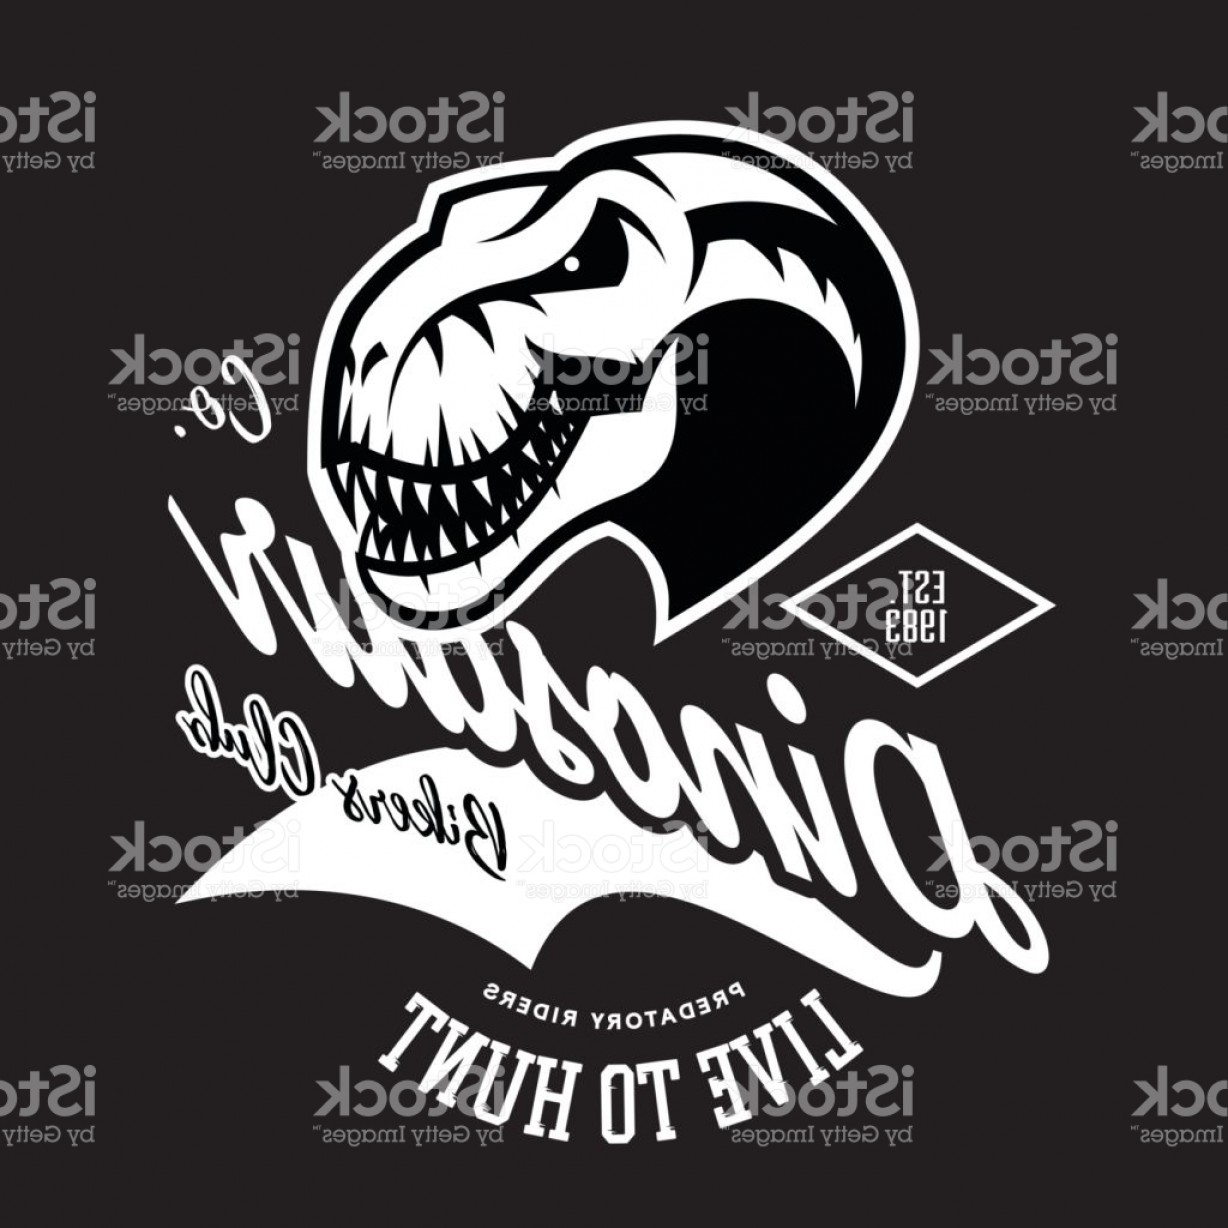 Gang Vector Graphics: Vintage Furious Dinosaur Bikers Gang Club Tee Print Vector Design Gm